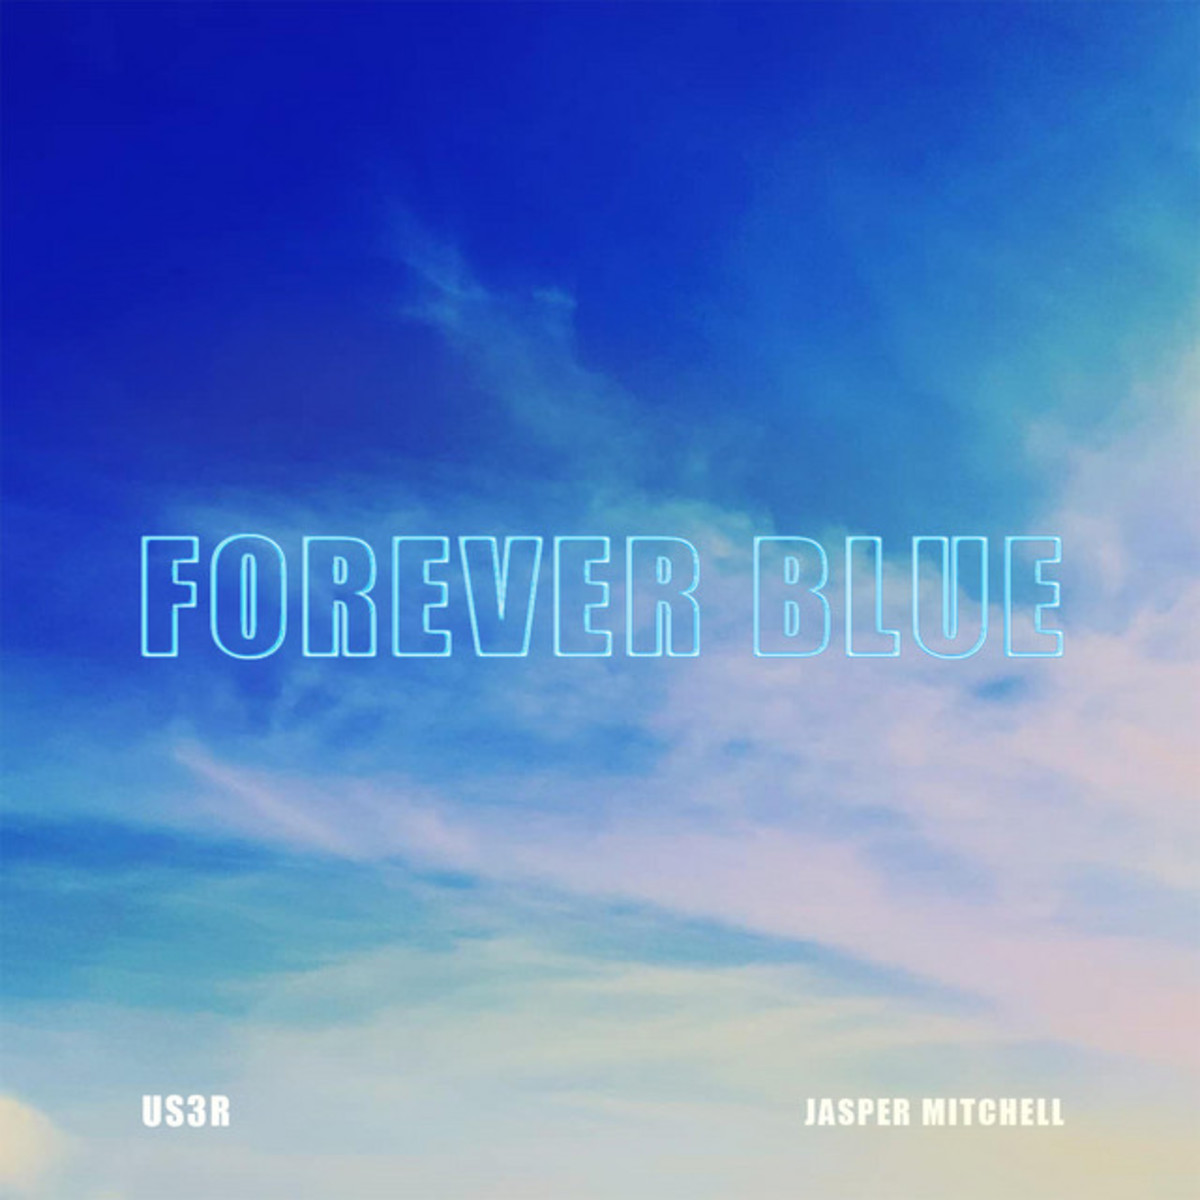 "Artwork for the single, ""Forever Blue,"" by US3r and Jasper Mitchell"